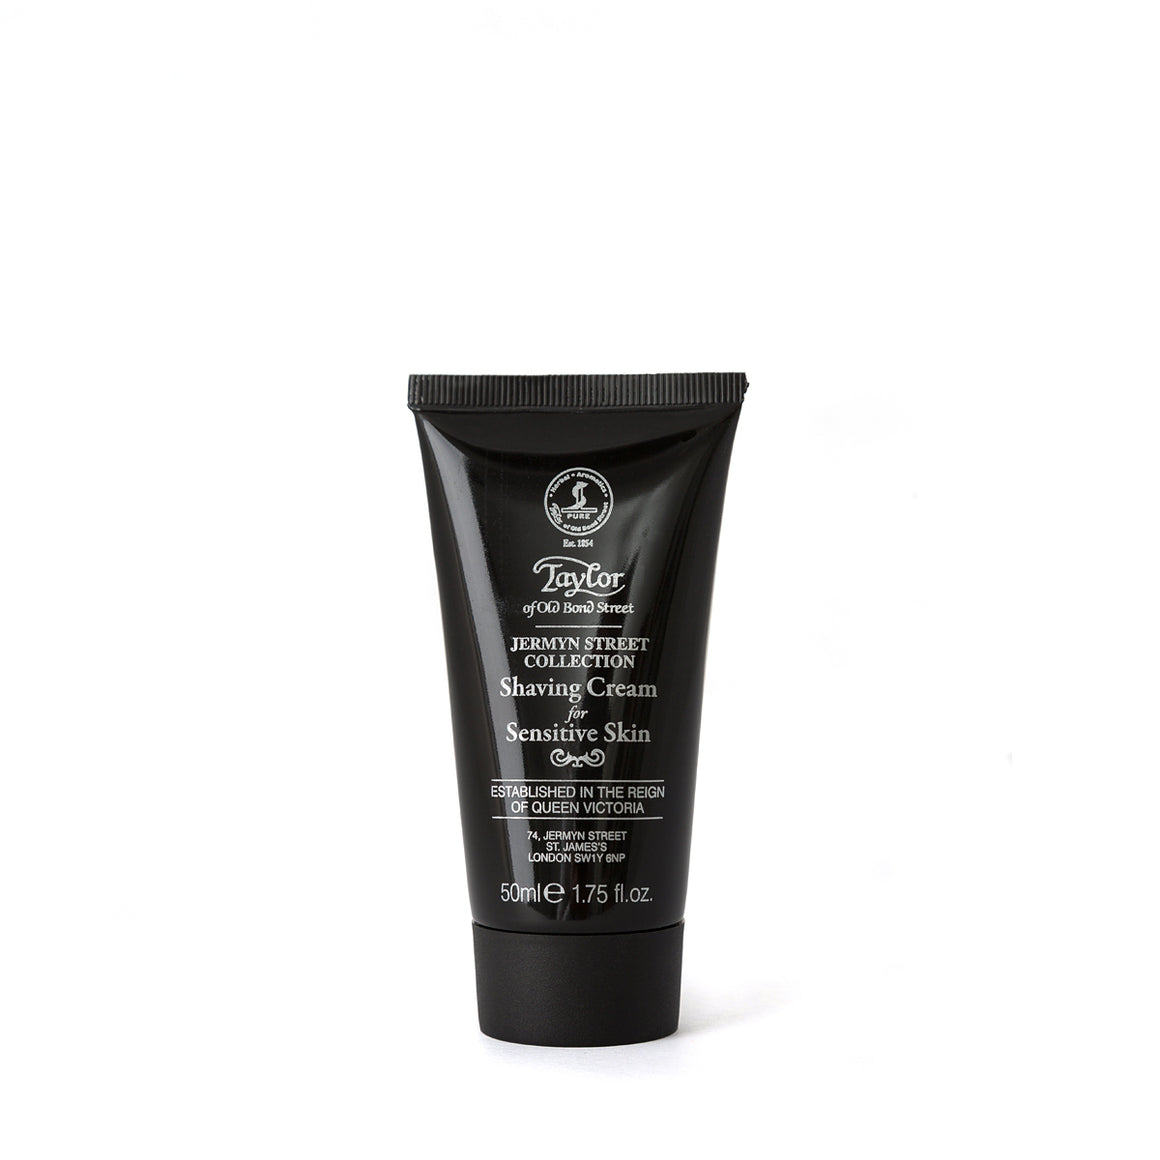 Jermyn Street Shaving Cream Tube 50ml for Sensitive Skin